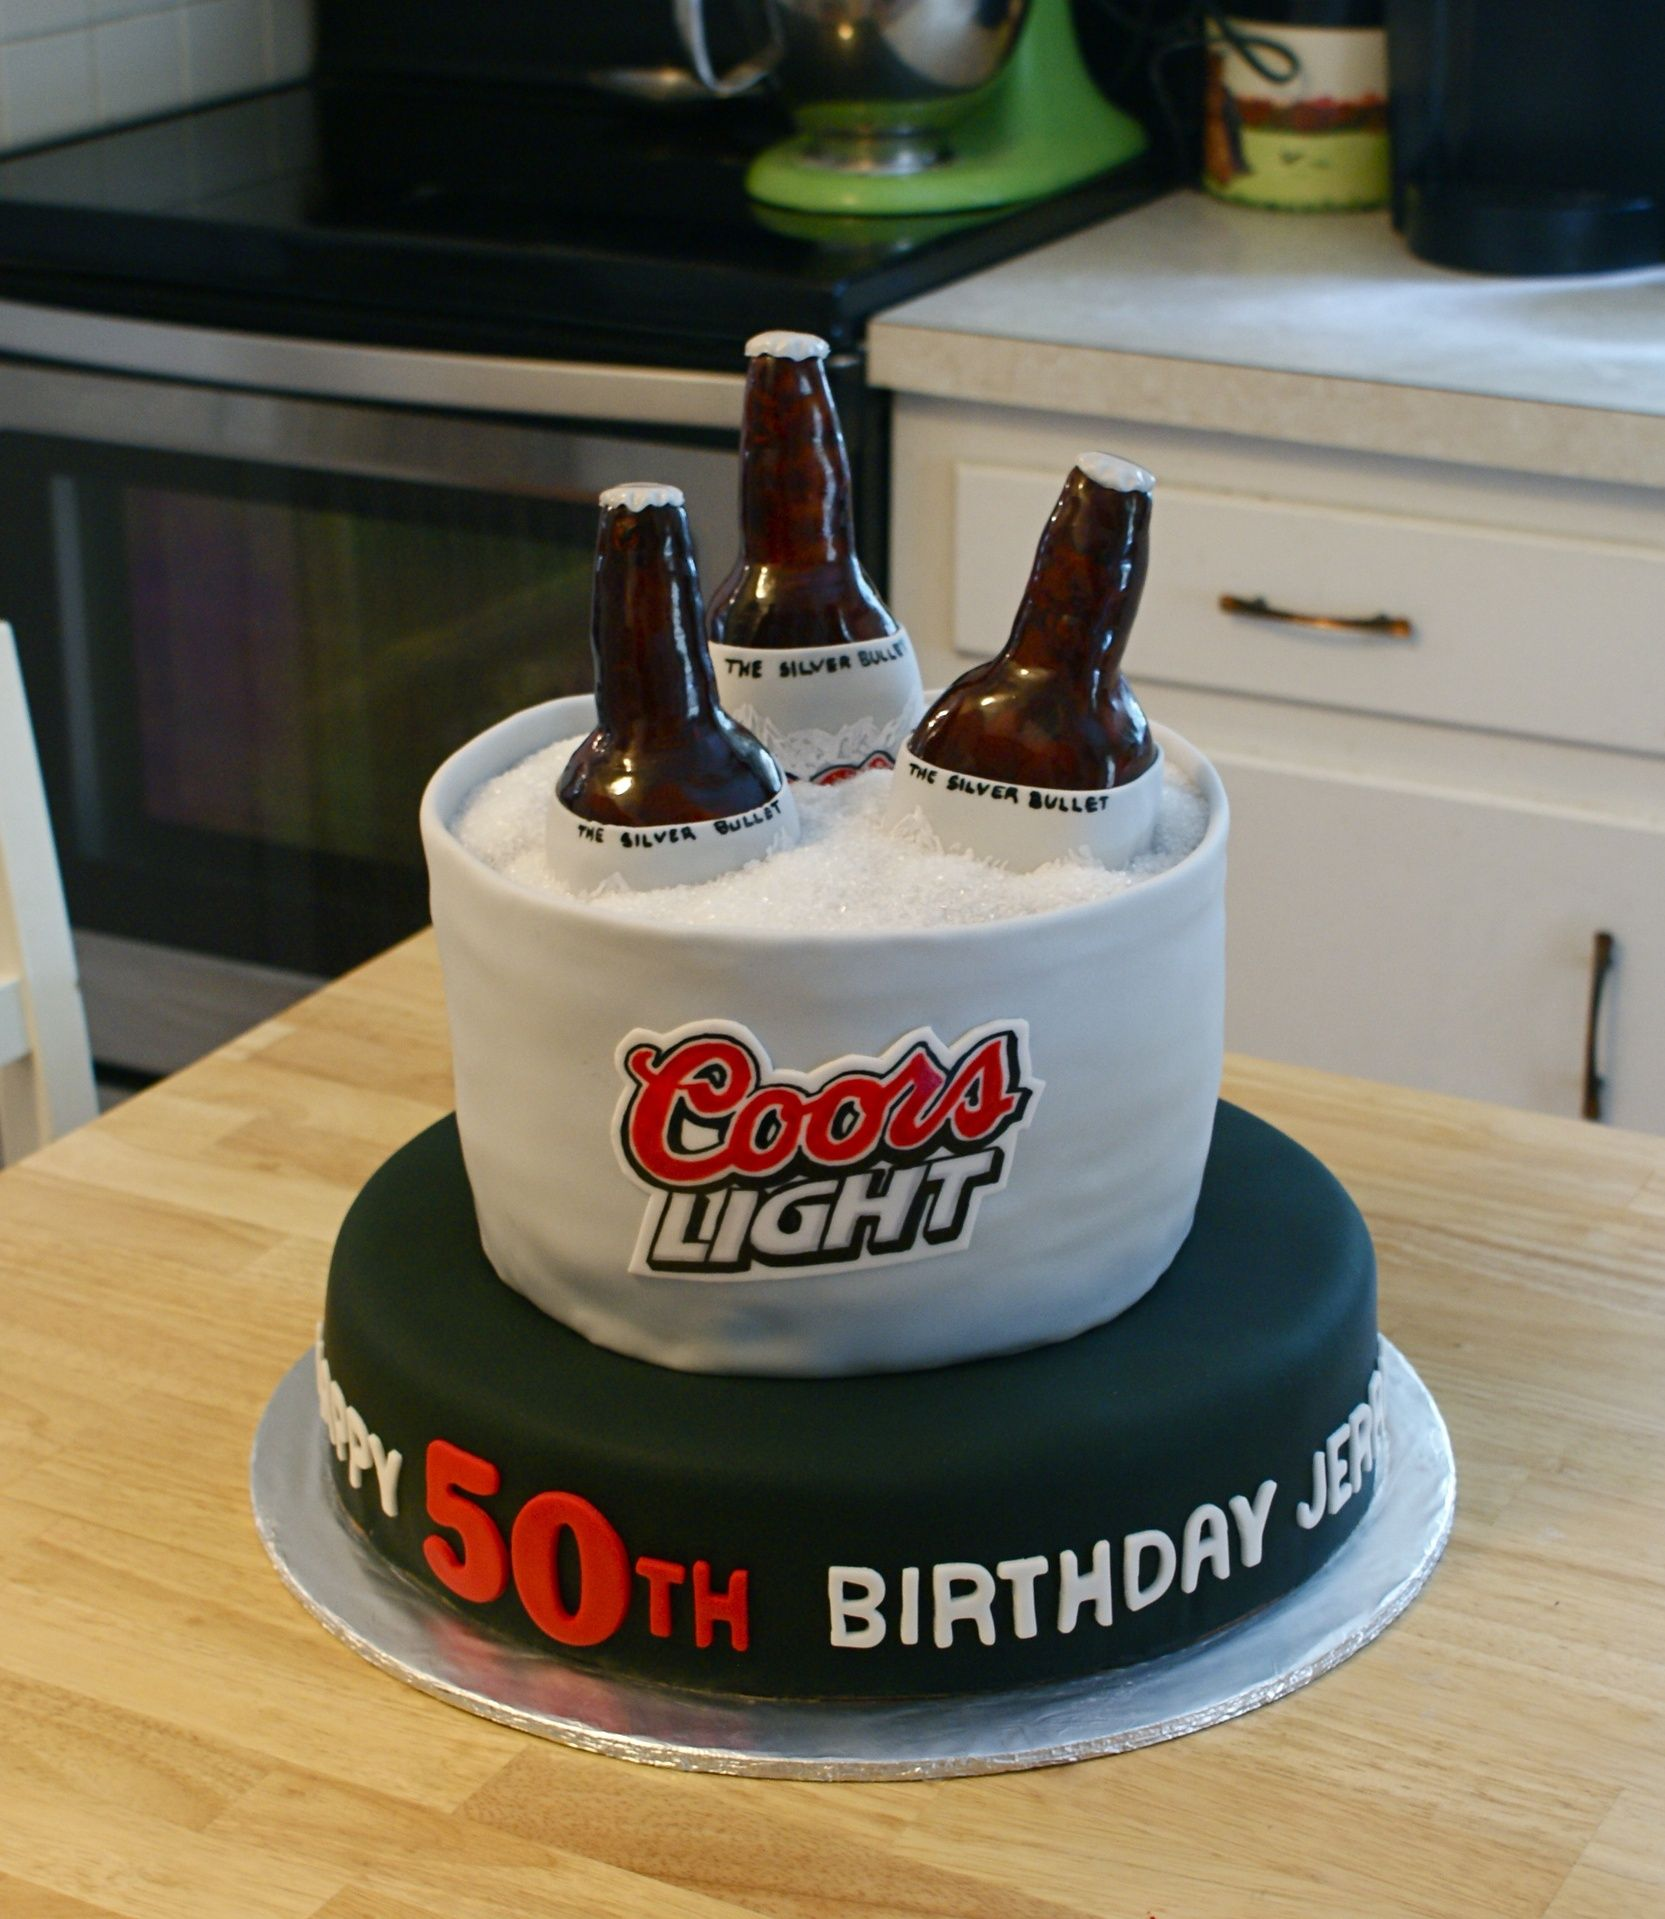 Coors Light Beer Cake   Cakes By Meg